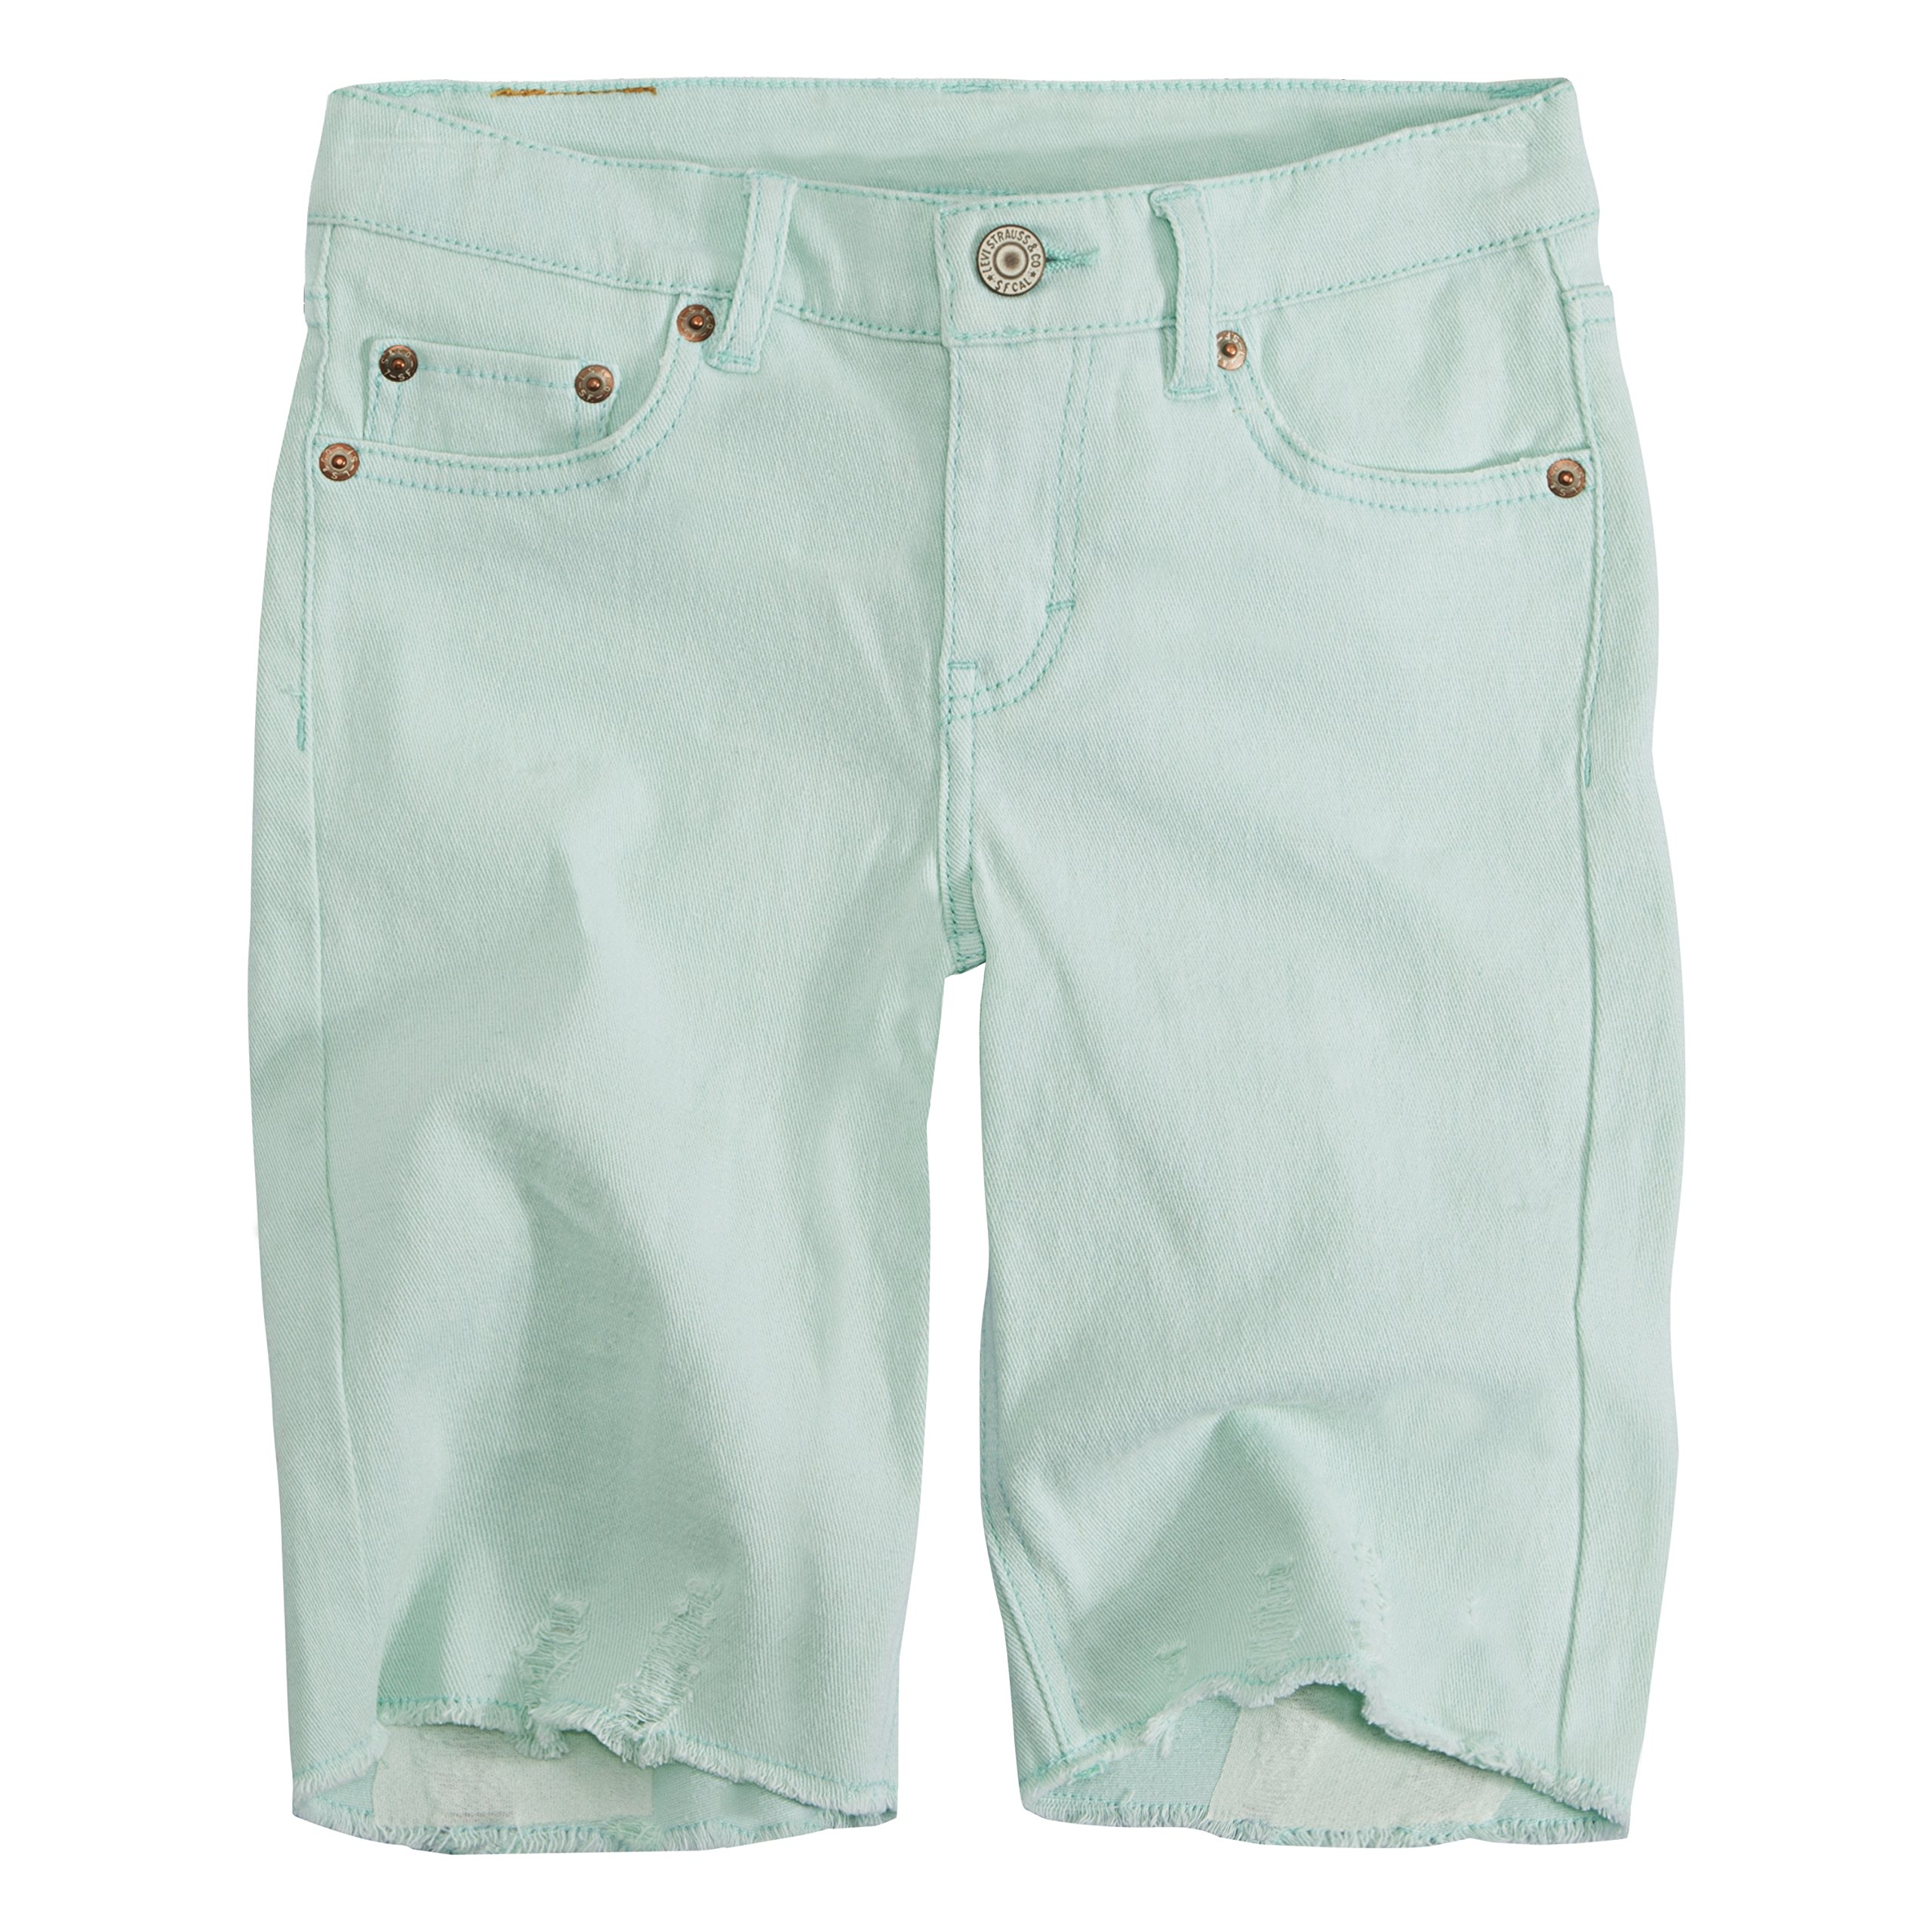 Levi's Big Girls' Denim Bermuda Shorts, Fair Aqua, 12